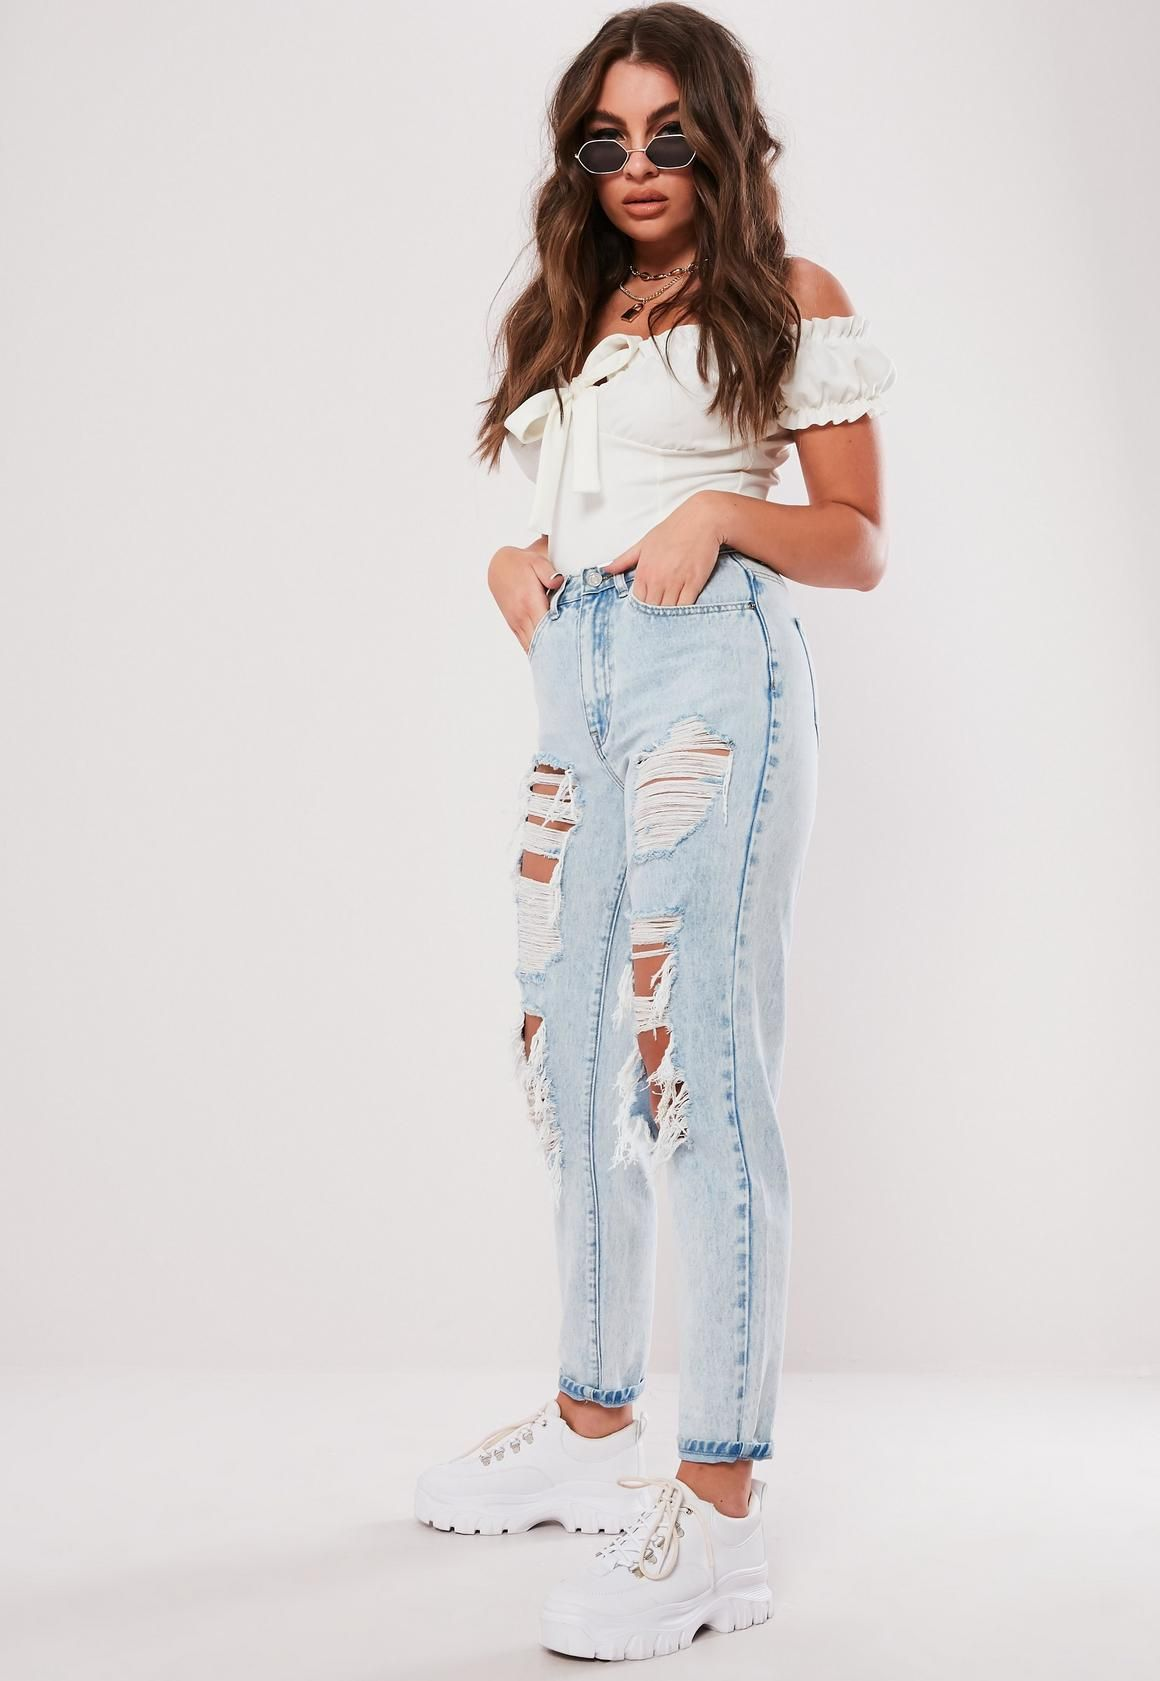 7ece1c62c247 light blue distressed look vintage high rise mom style jeans with ripped  detail at the front and belt loops. regular fit ankle grazer - sits on the  ankle ...